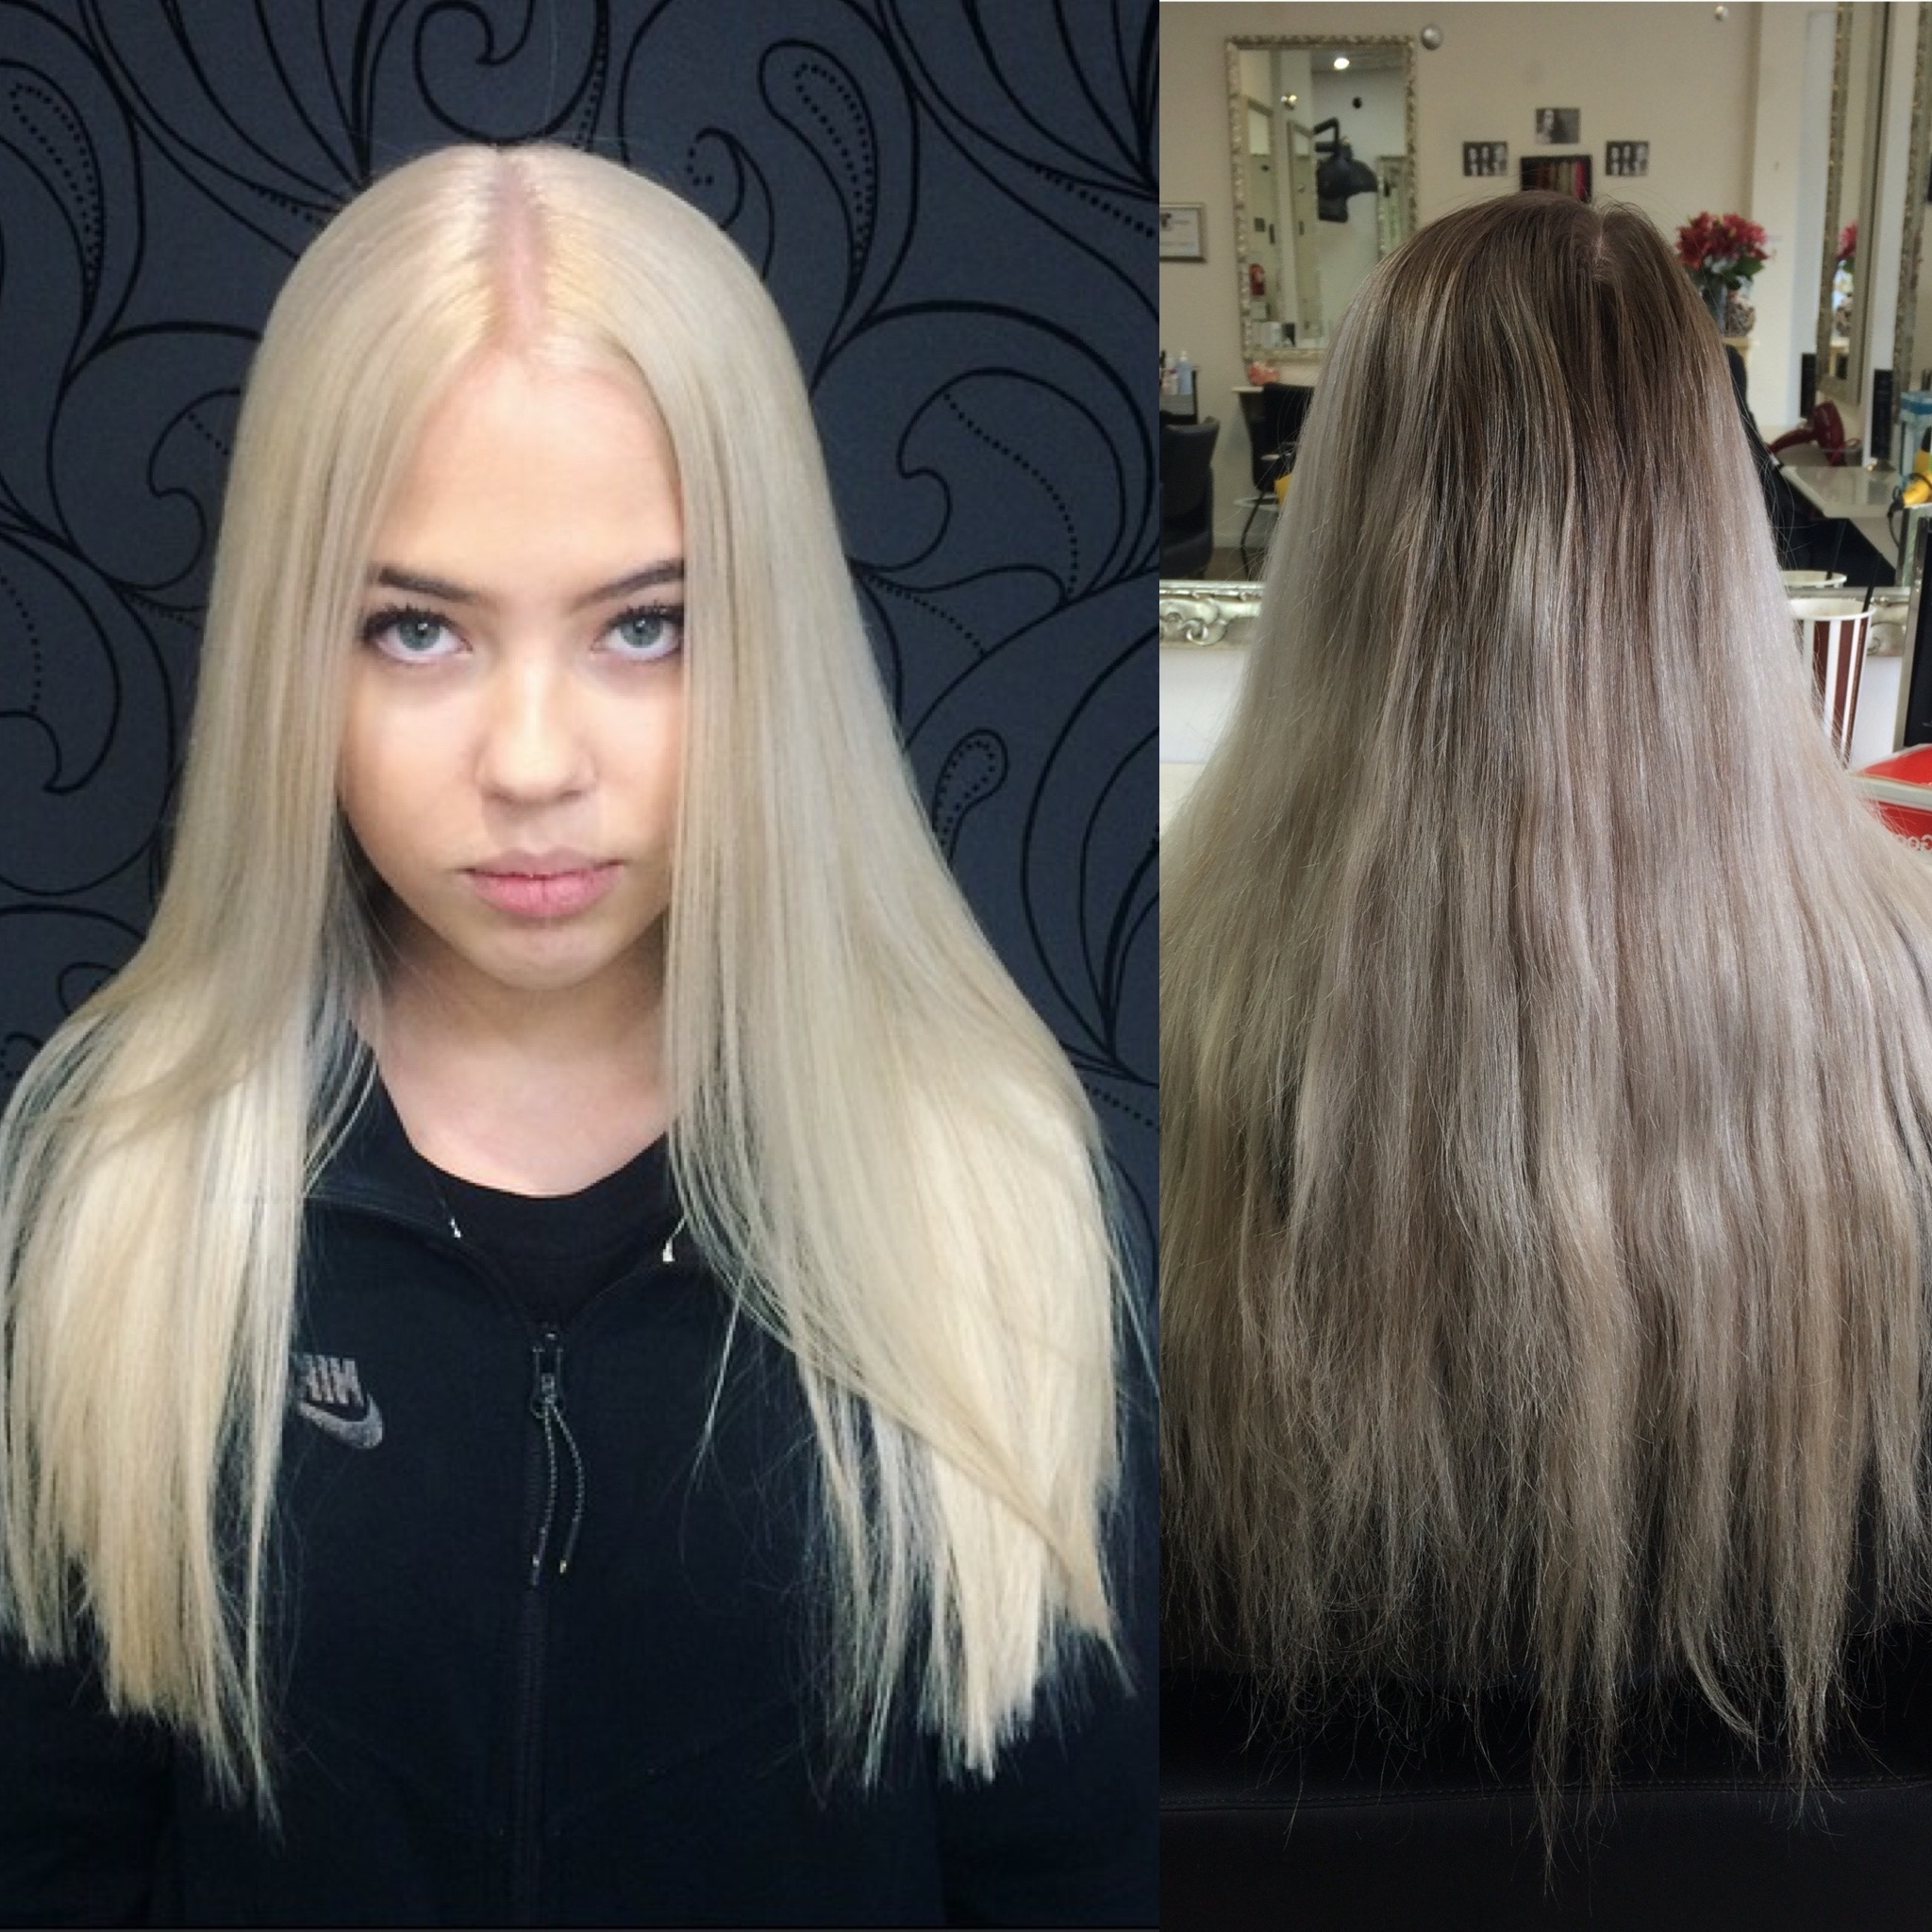 Fashionable Root Fade Into Blonde Hairstyles Within Transformation: Faded And Damaged To Breathtaking Blonde – News (View 7 of 20)